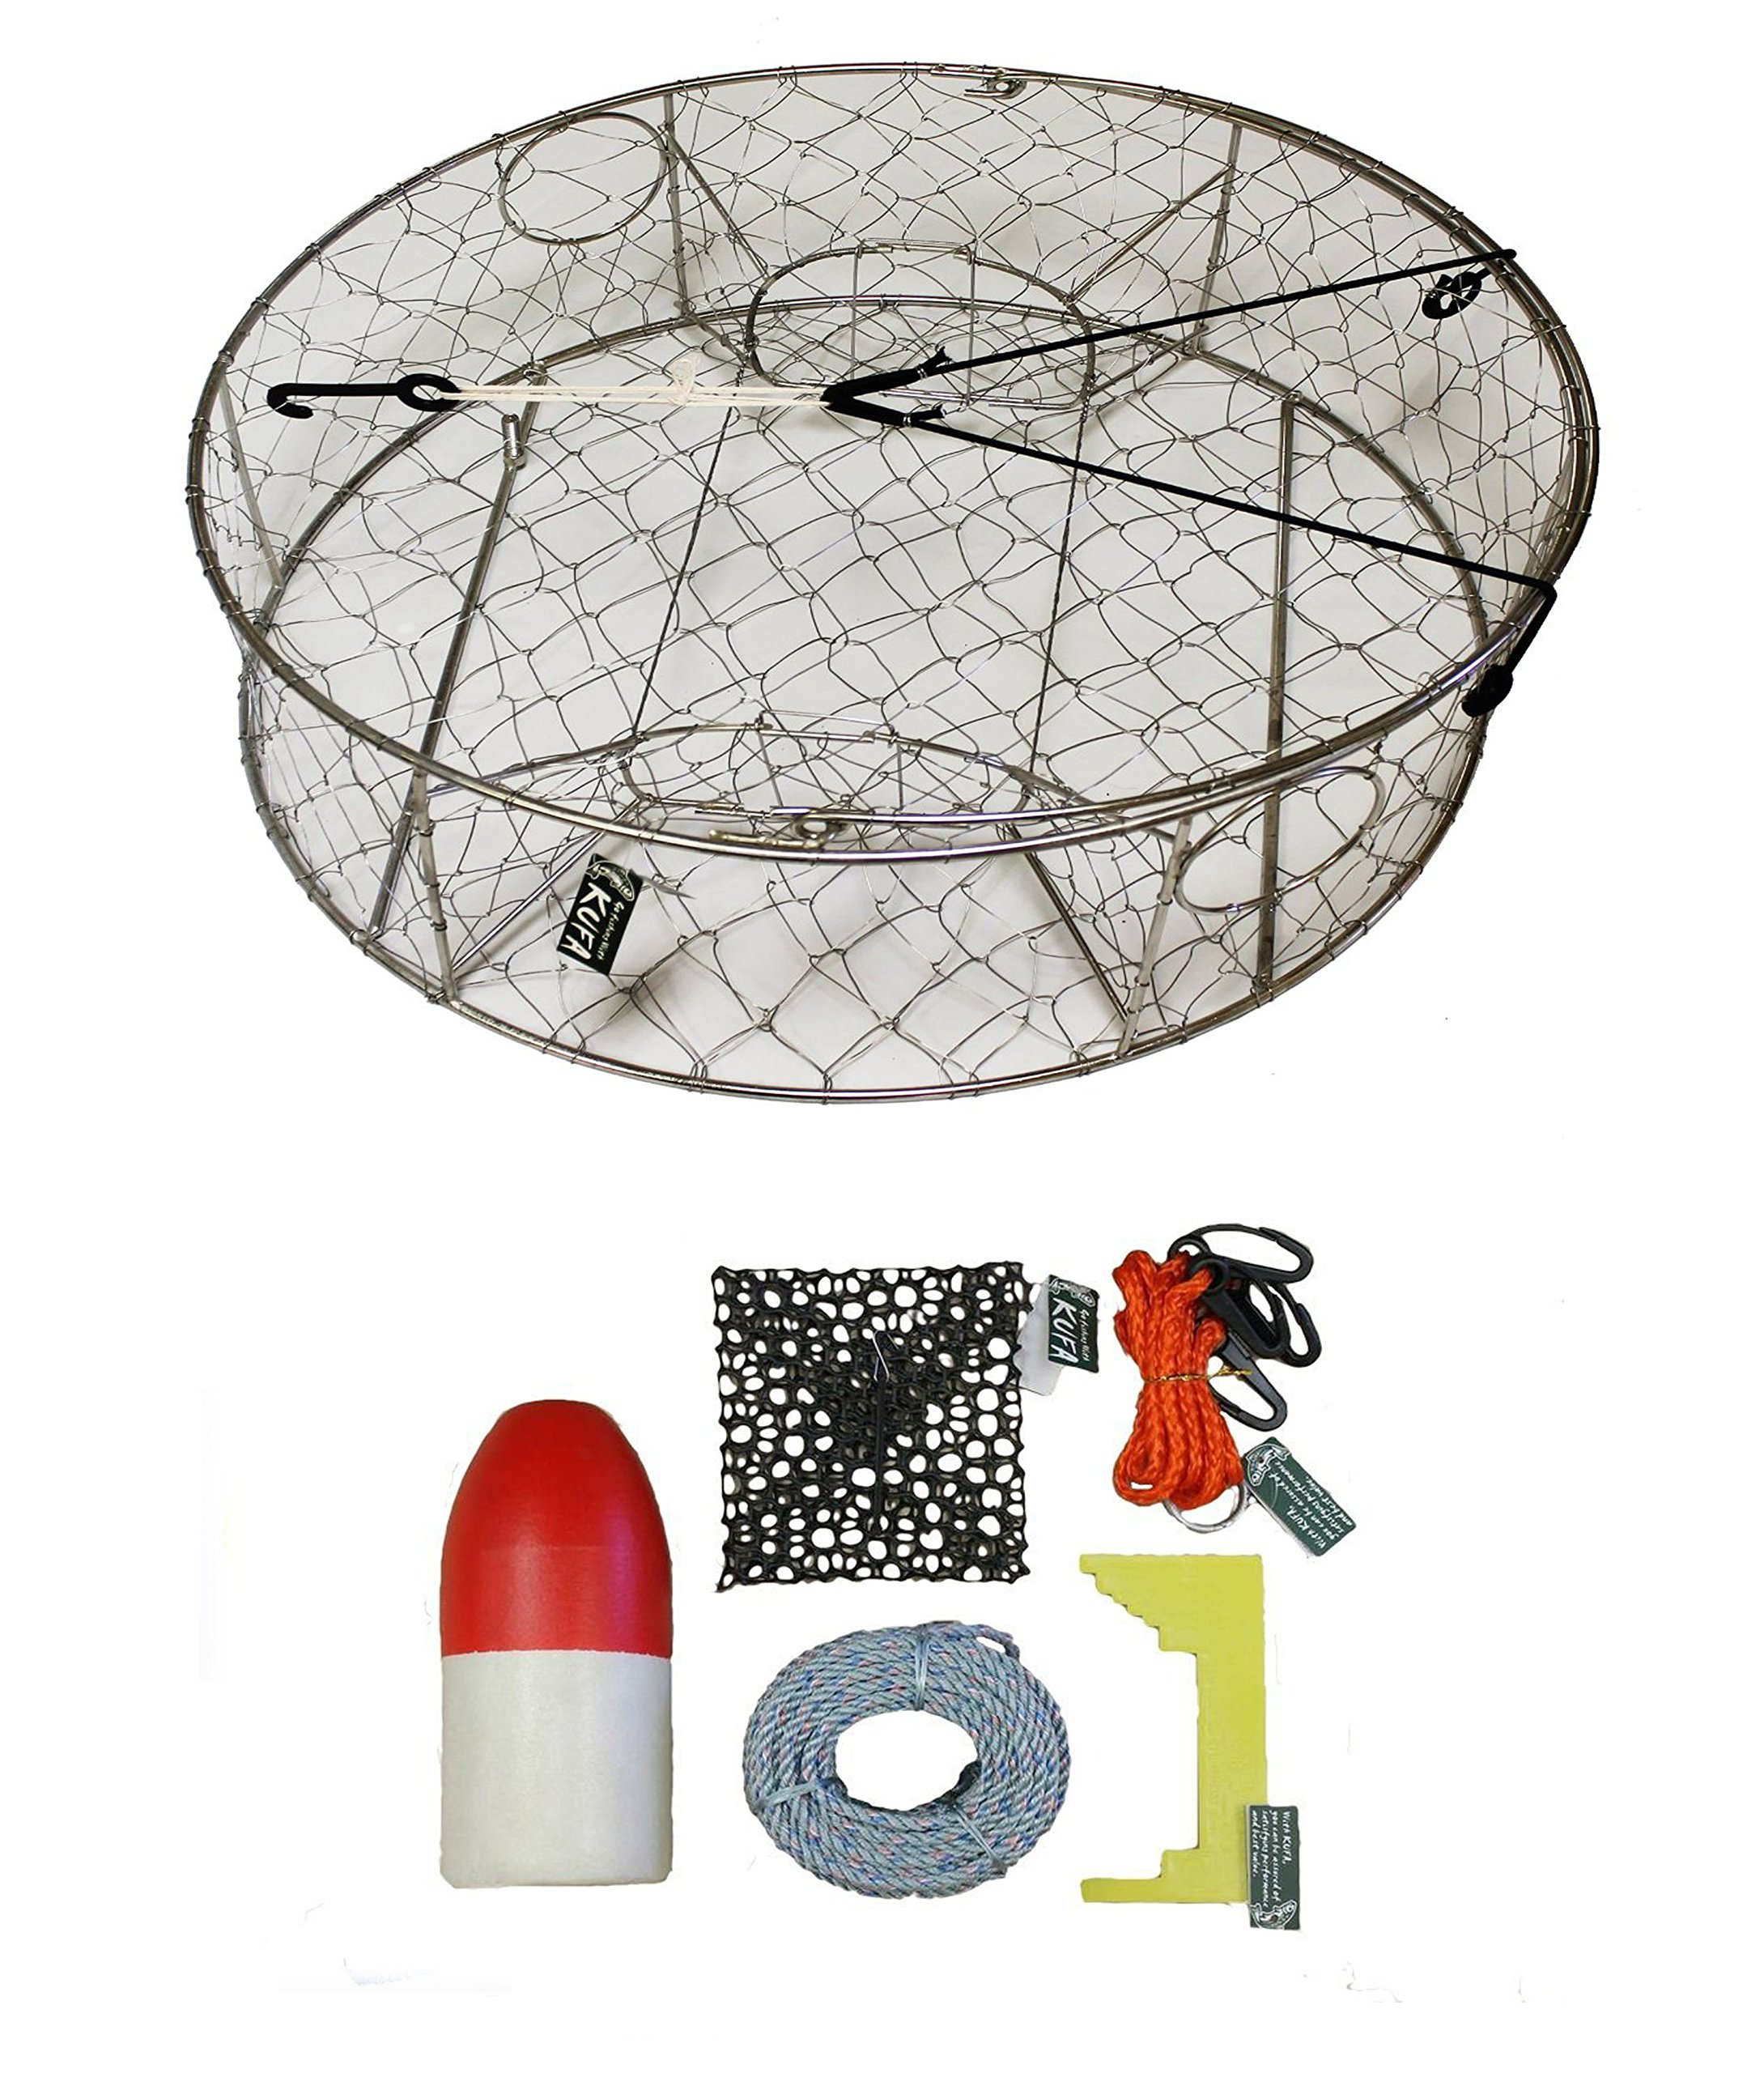 KUFA Stainless Steel Crab Trap with Zinc Anode & Accessory Kit (100' Lead CoreRope, Clipper,Harness,Bait Case & 14'' Red/White Float) CT100+CAC3+ZIN1